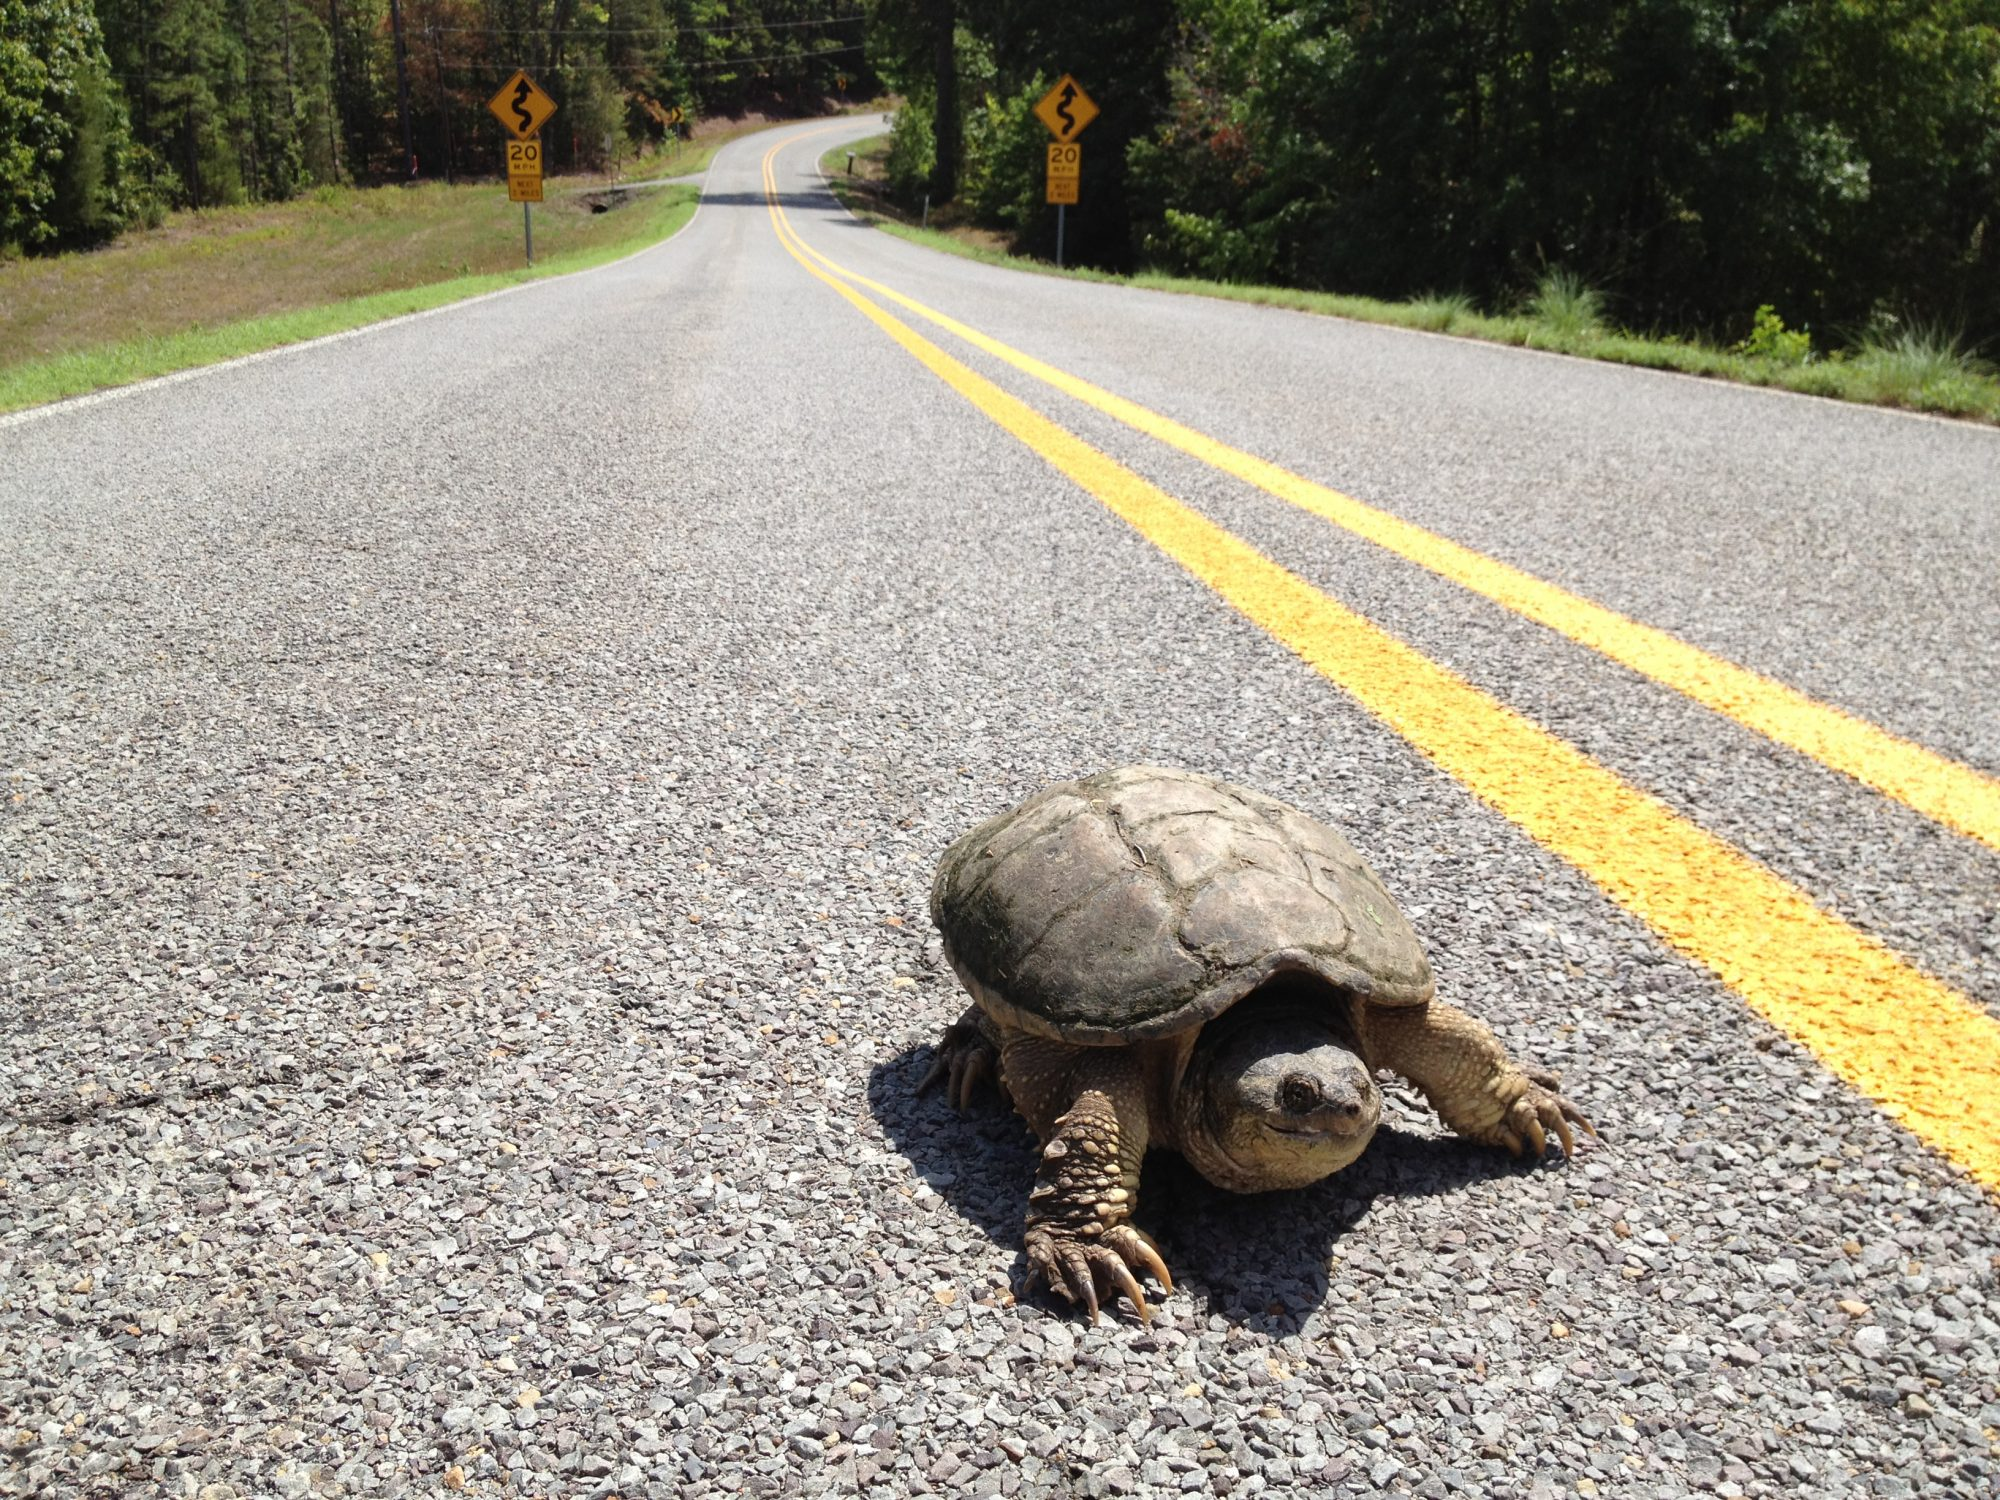 Snapping turtle on highway